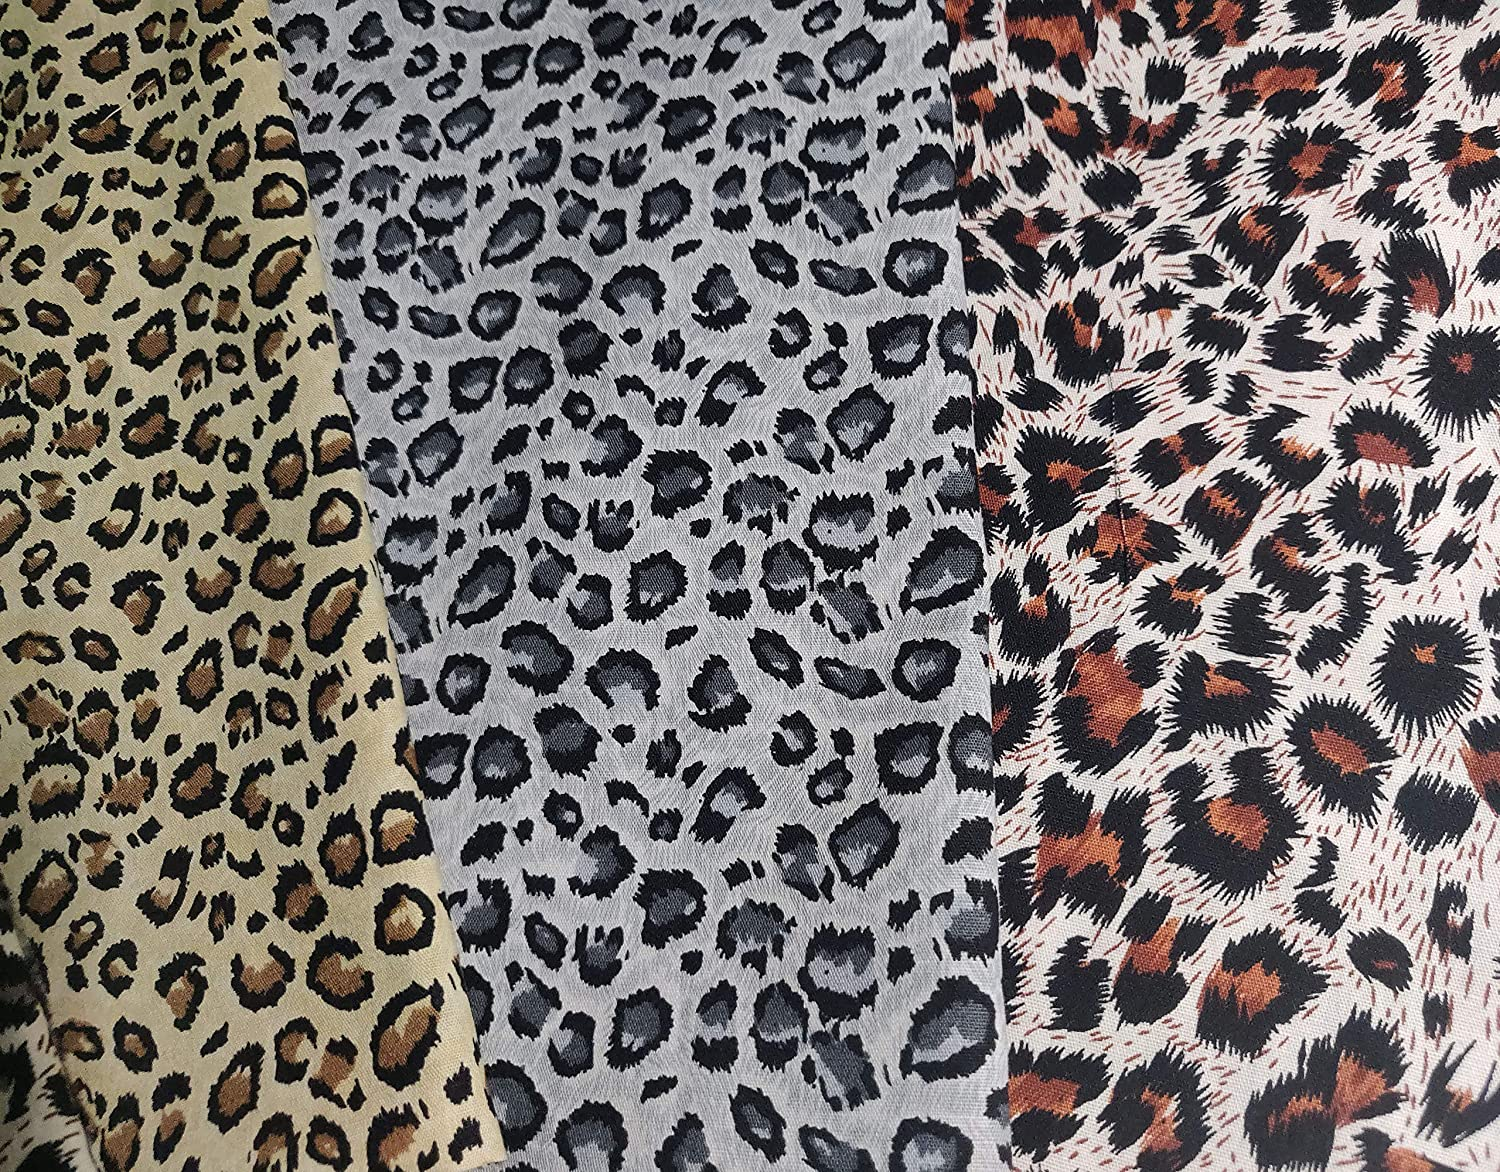 Quilting Fabric Squares 5pcs 18.8 x 16.5 inches Leopard Pattern Cotton Fabric Squares Sewing Fabric 48 x 42cm Fat Quarters Assorted Animals Printed Fabric Bundles for Patchwork Craft